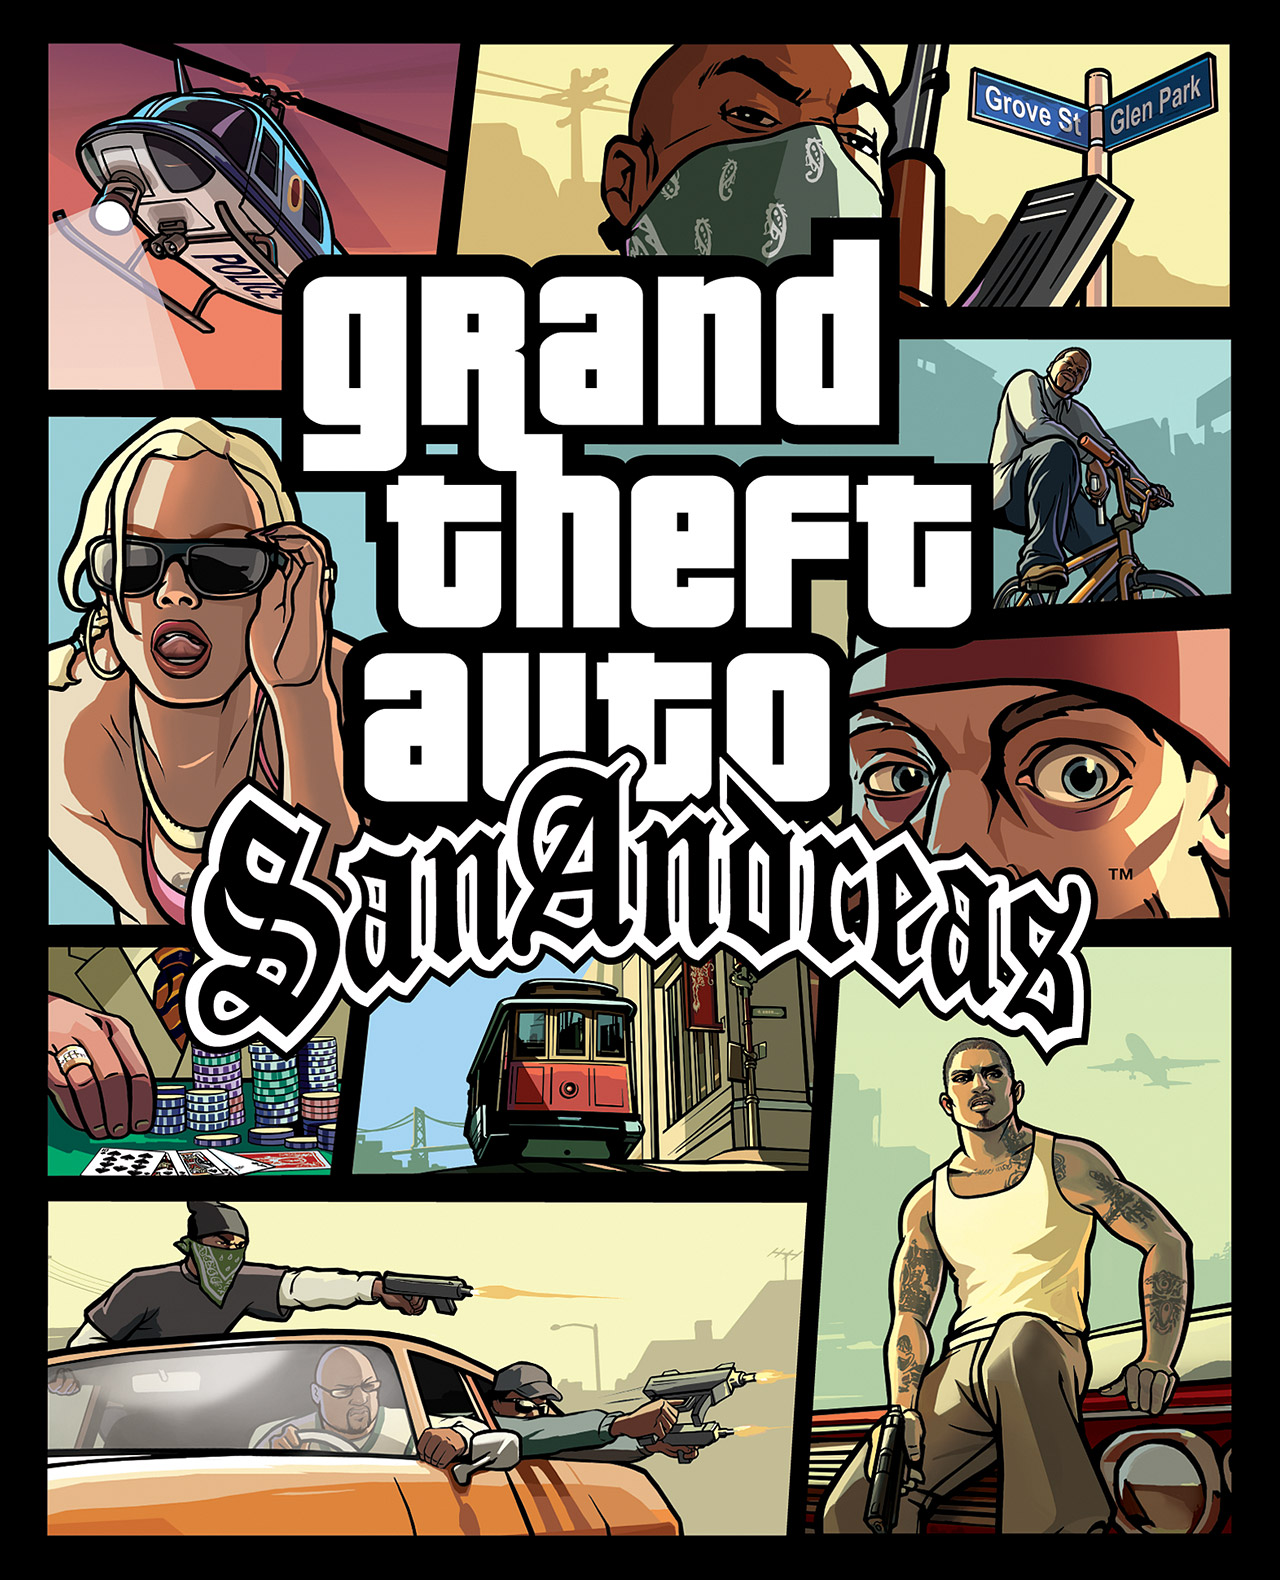 Grand theft auto san andreas multiplayer 0.3 d chip